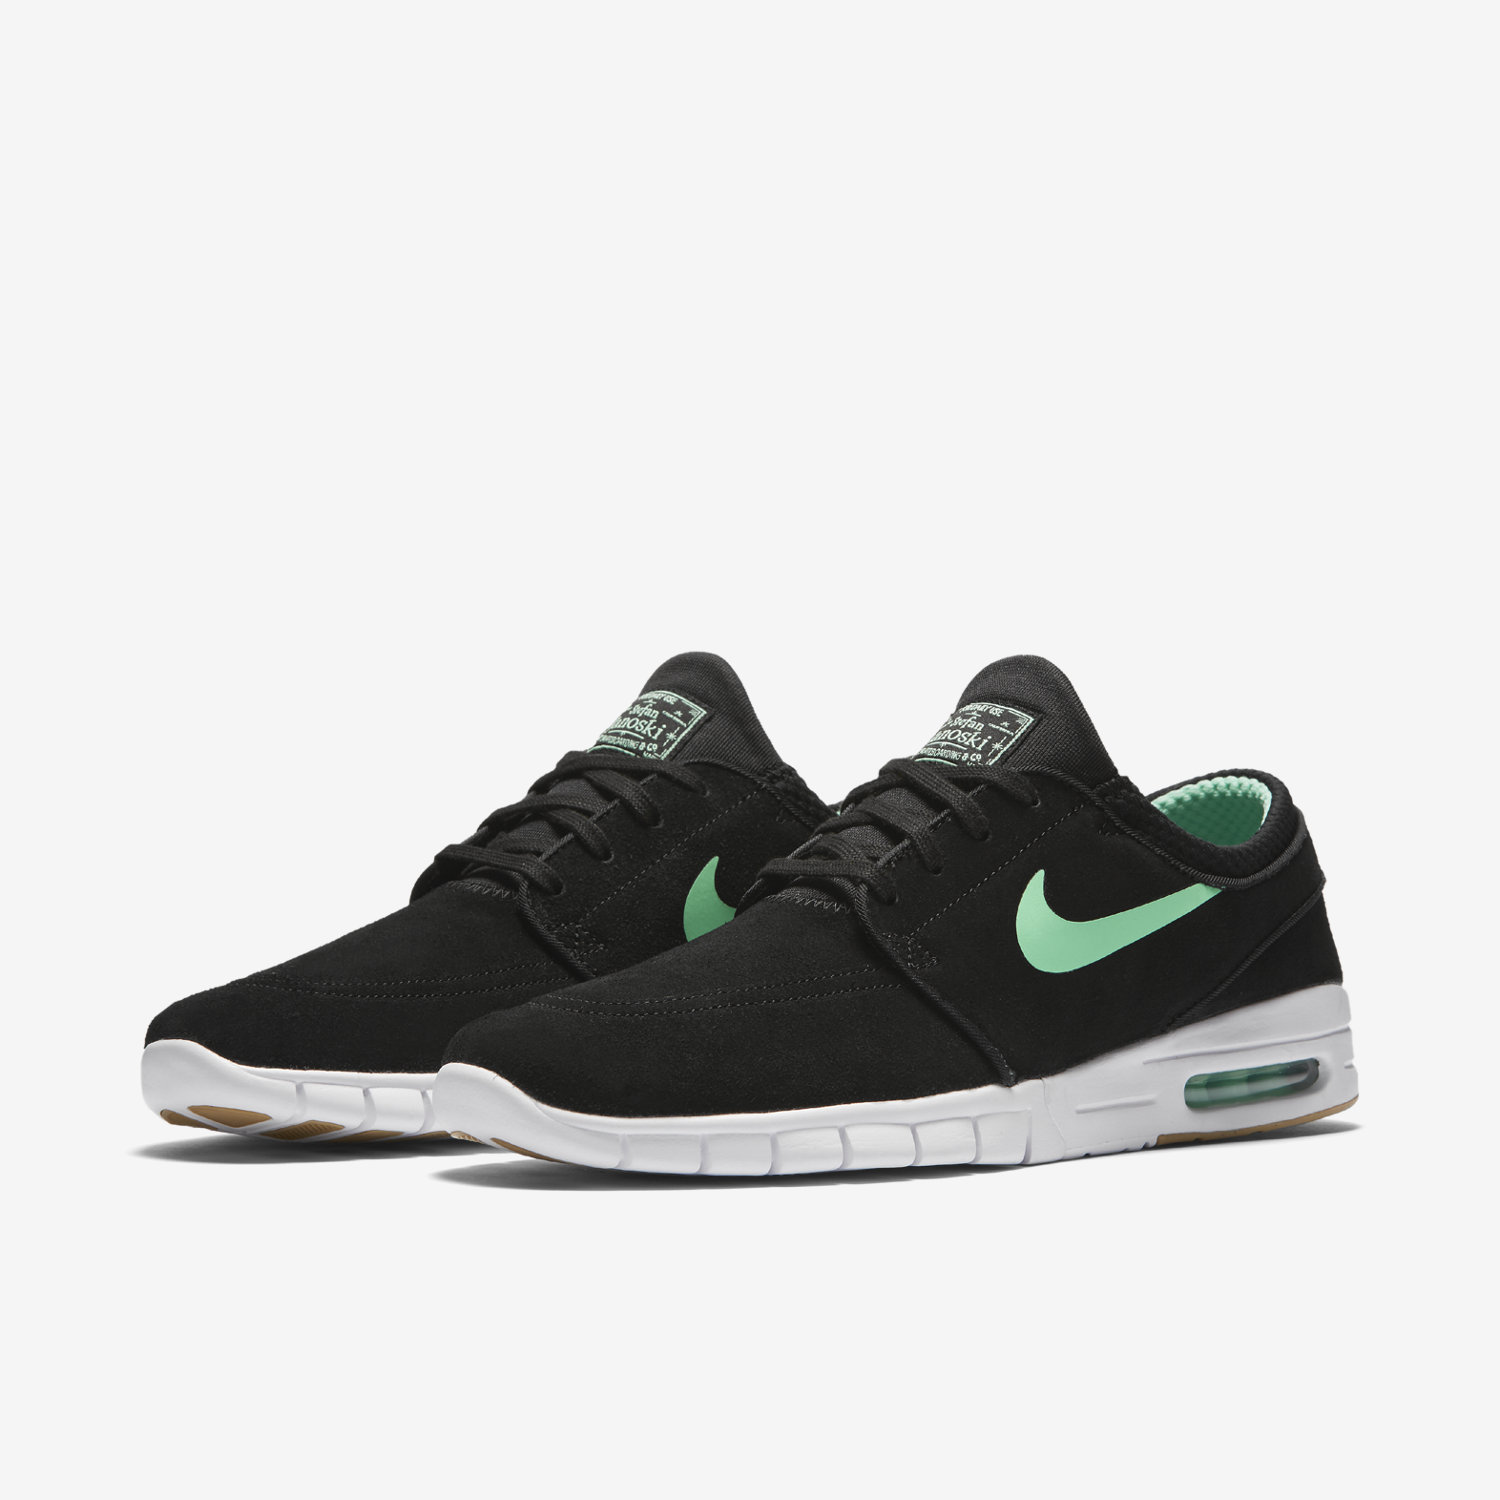 stefan janoski max nike sb. Black Bedroom Furniture Sets. Home Design Ideas